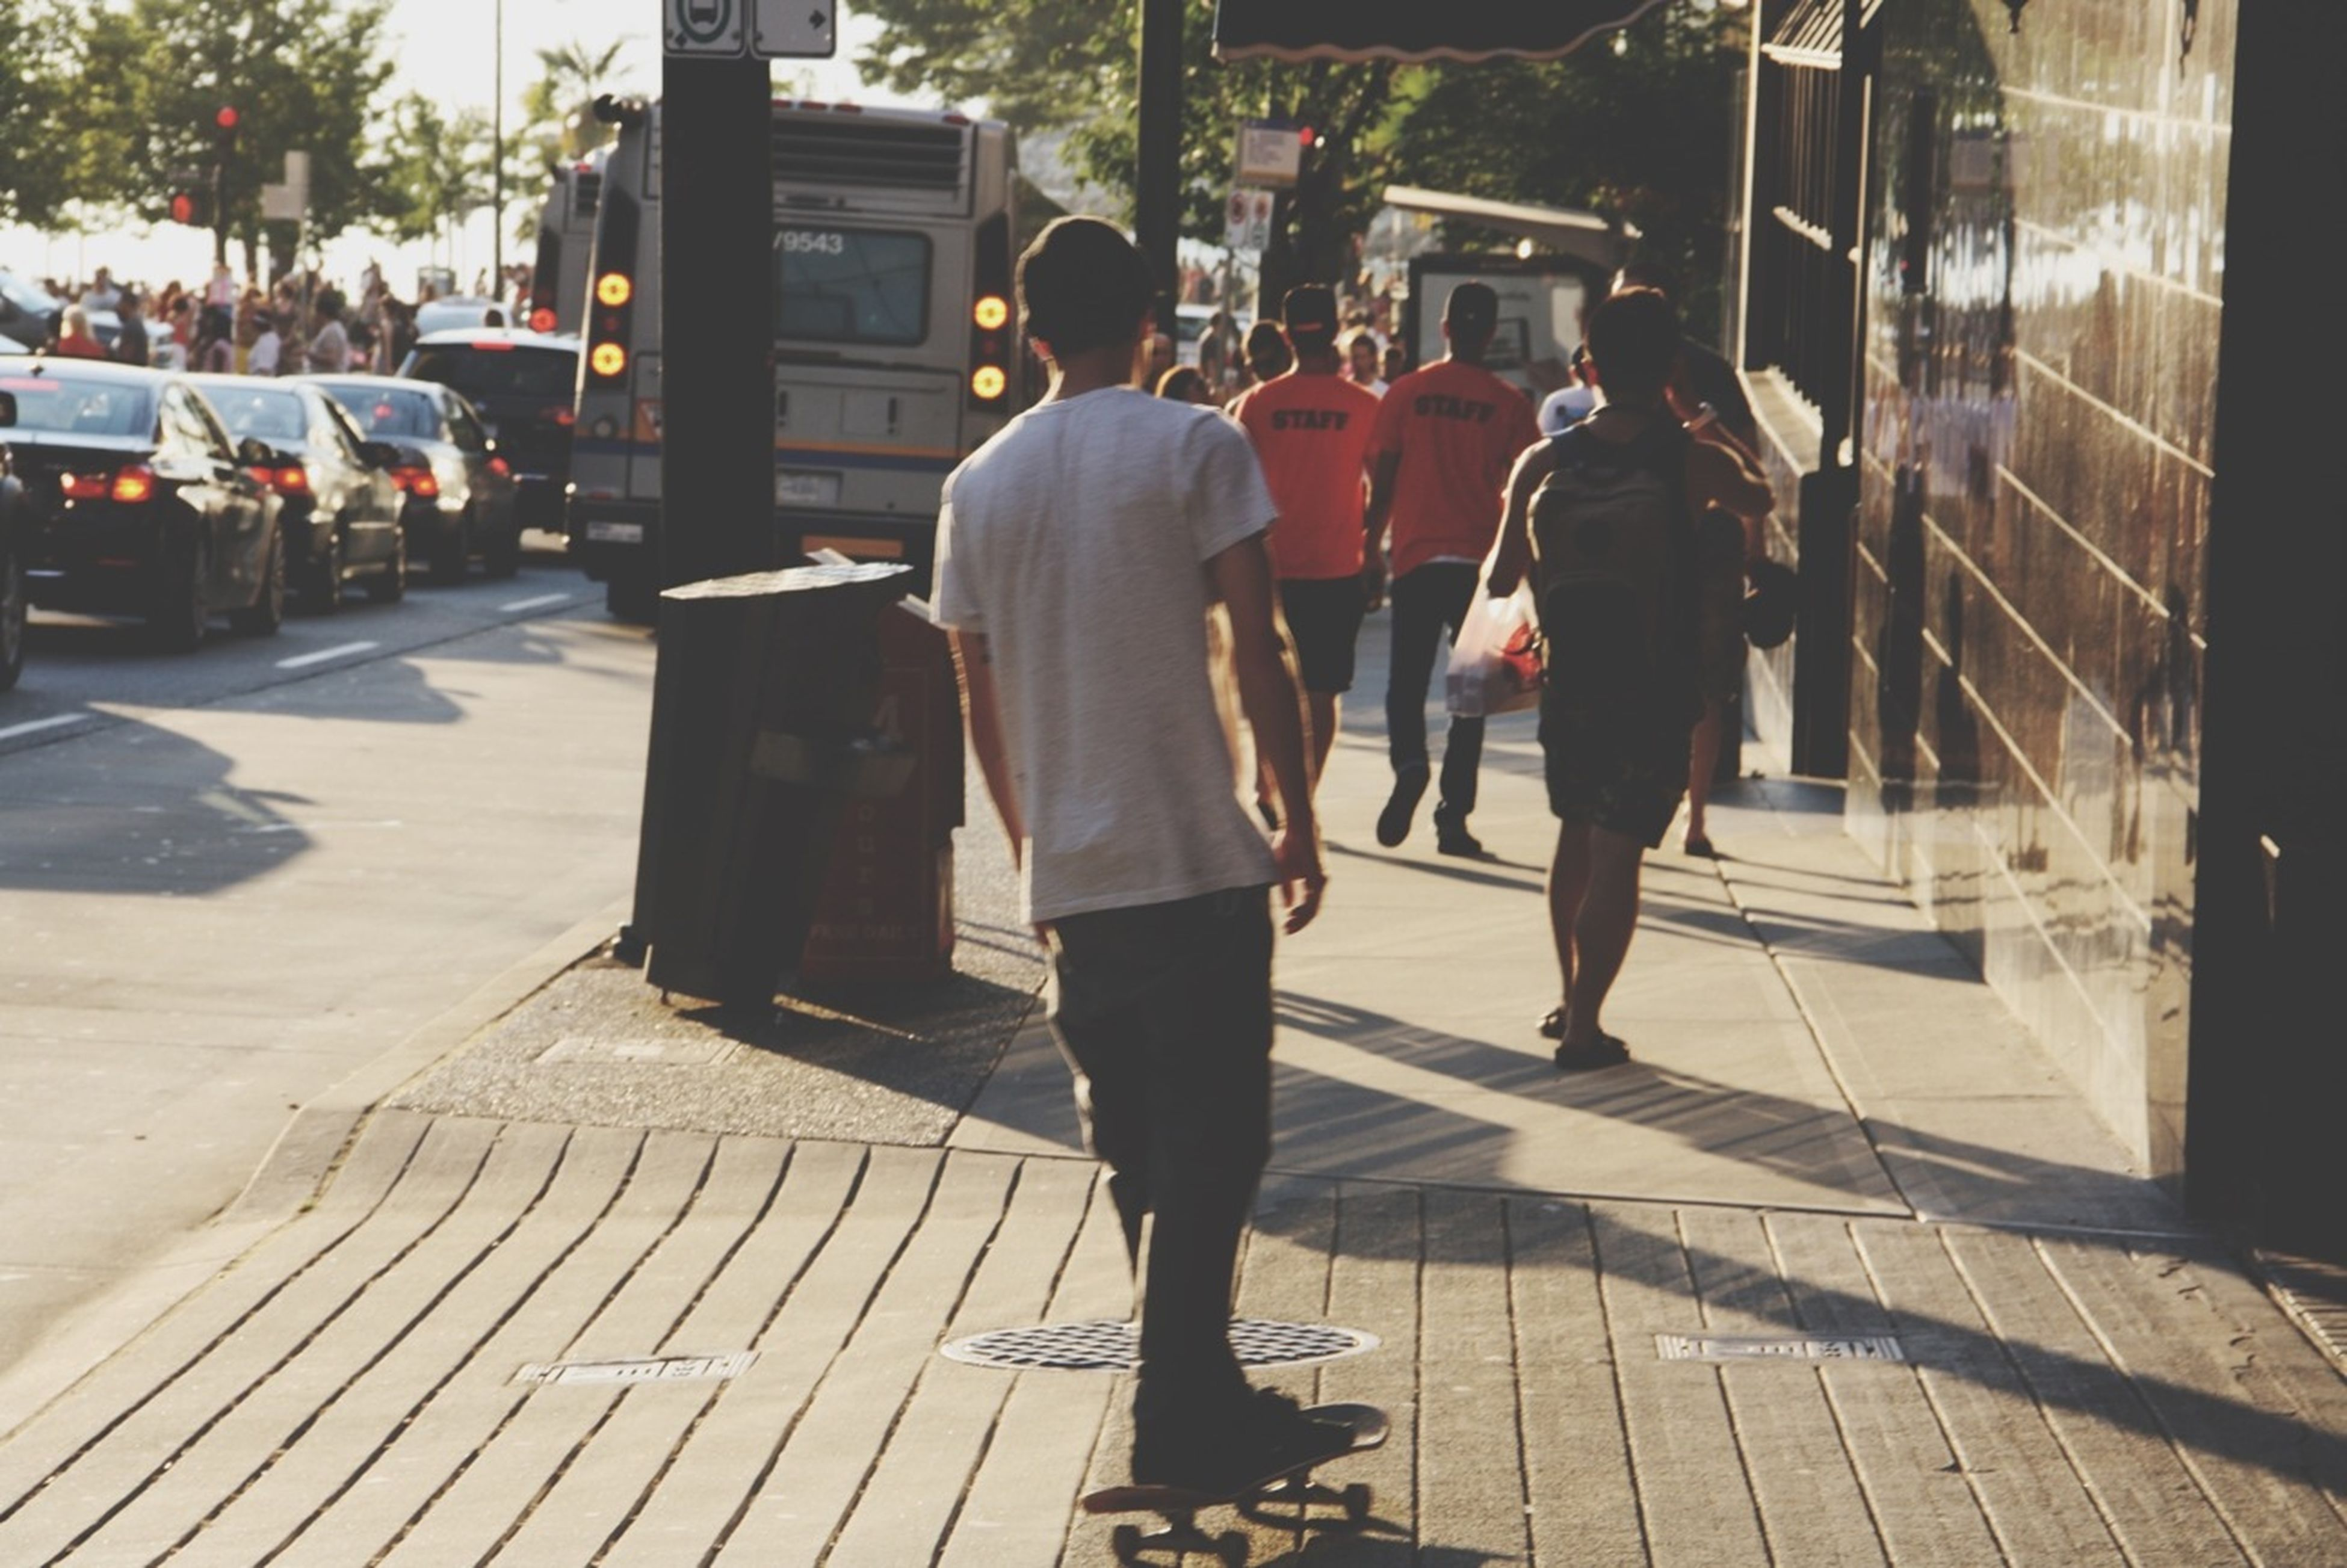 men, lifestyles, walking, street, rear view, person, city life, city, full length, leisure activity, sidewalk, sunlight, building exterior, shadow, togetherness, outdoors, casual clothing, day